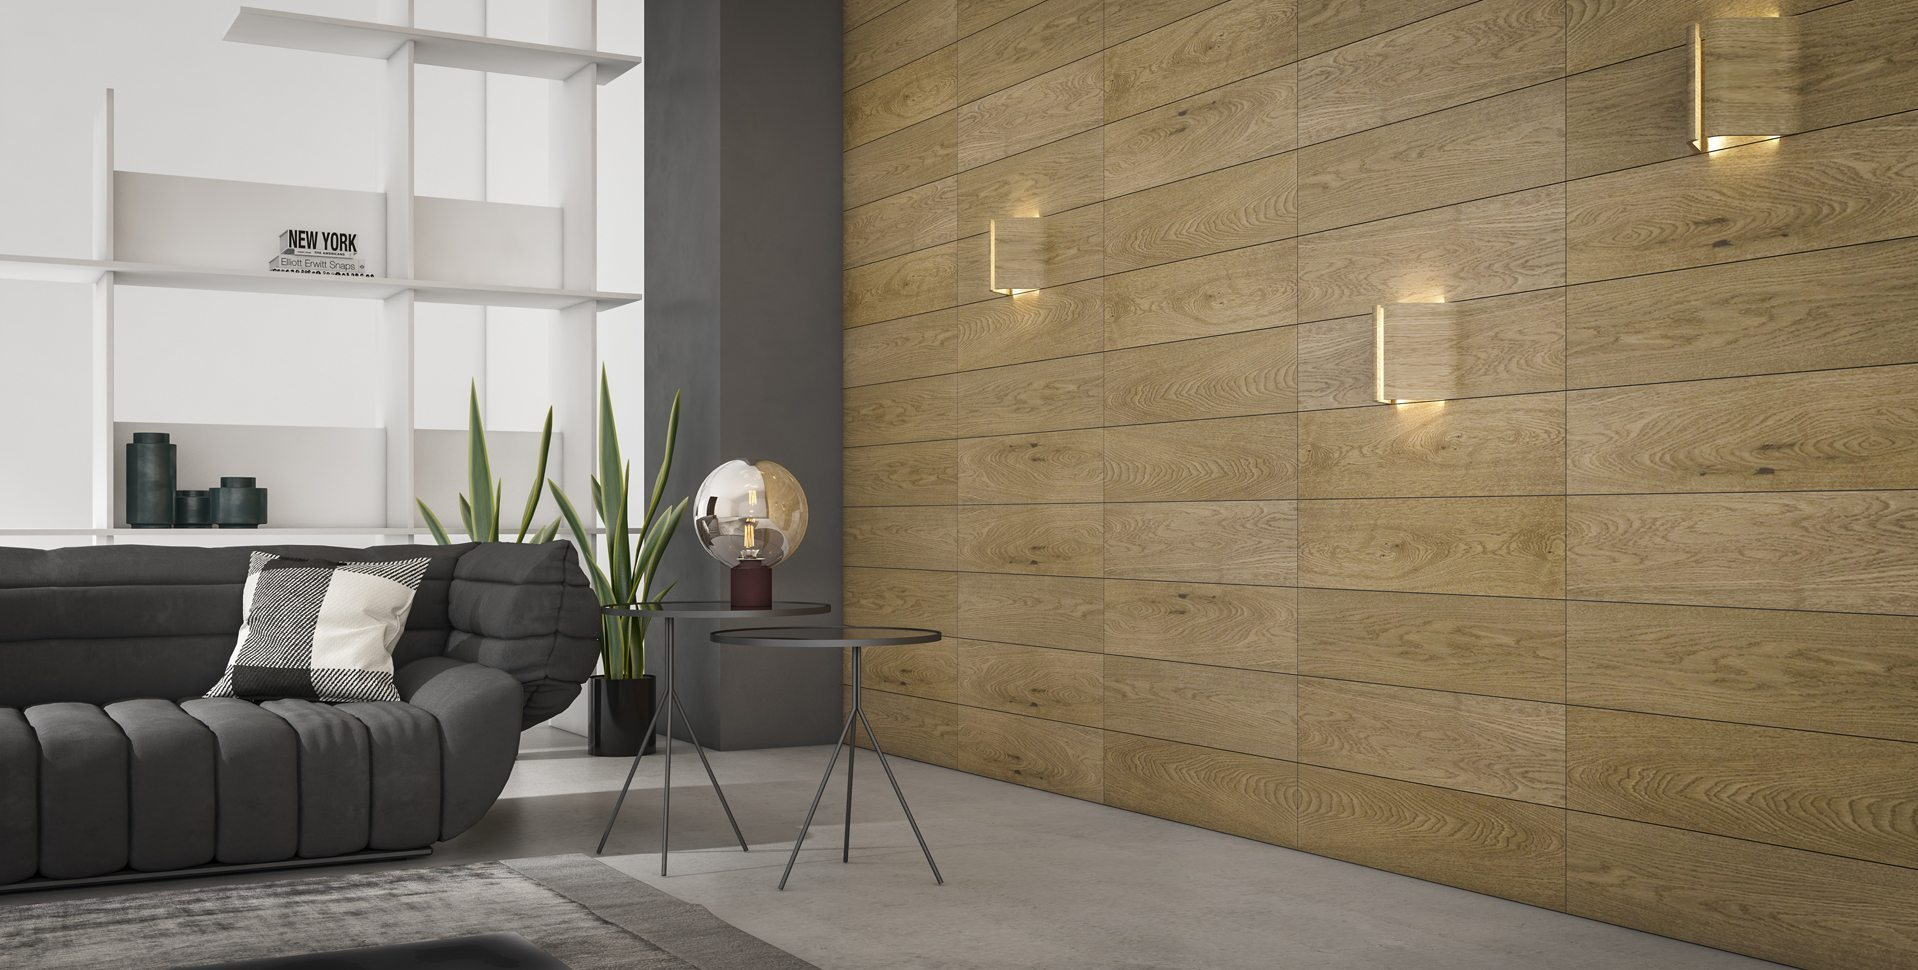 Product Visualization: Wall Covering and Lighting Fixtures, Living room Interior